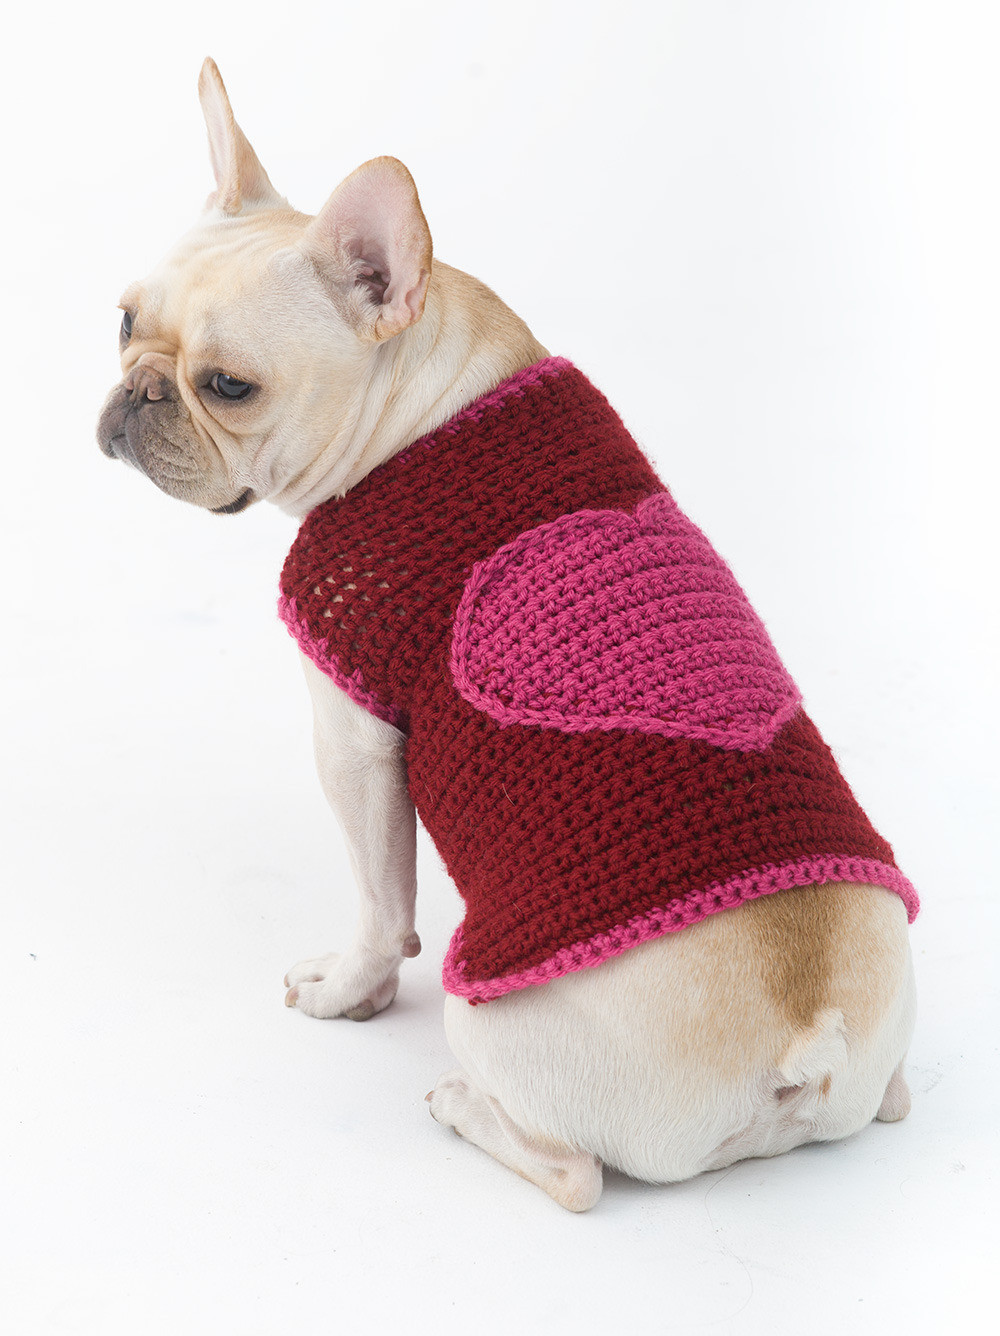 Free Dog Sweater Patterns Best Of Romantic Dog Sweater In Lion Brand Vanna S Choice L Of Innovative 47 Models Free Dog Sweater Patterns